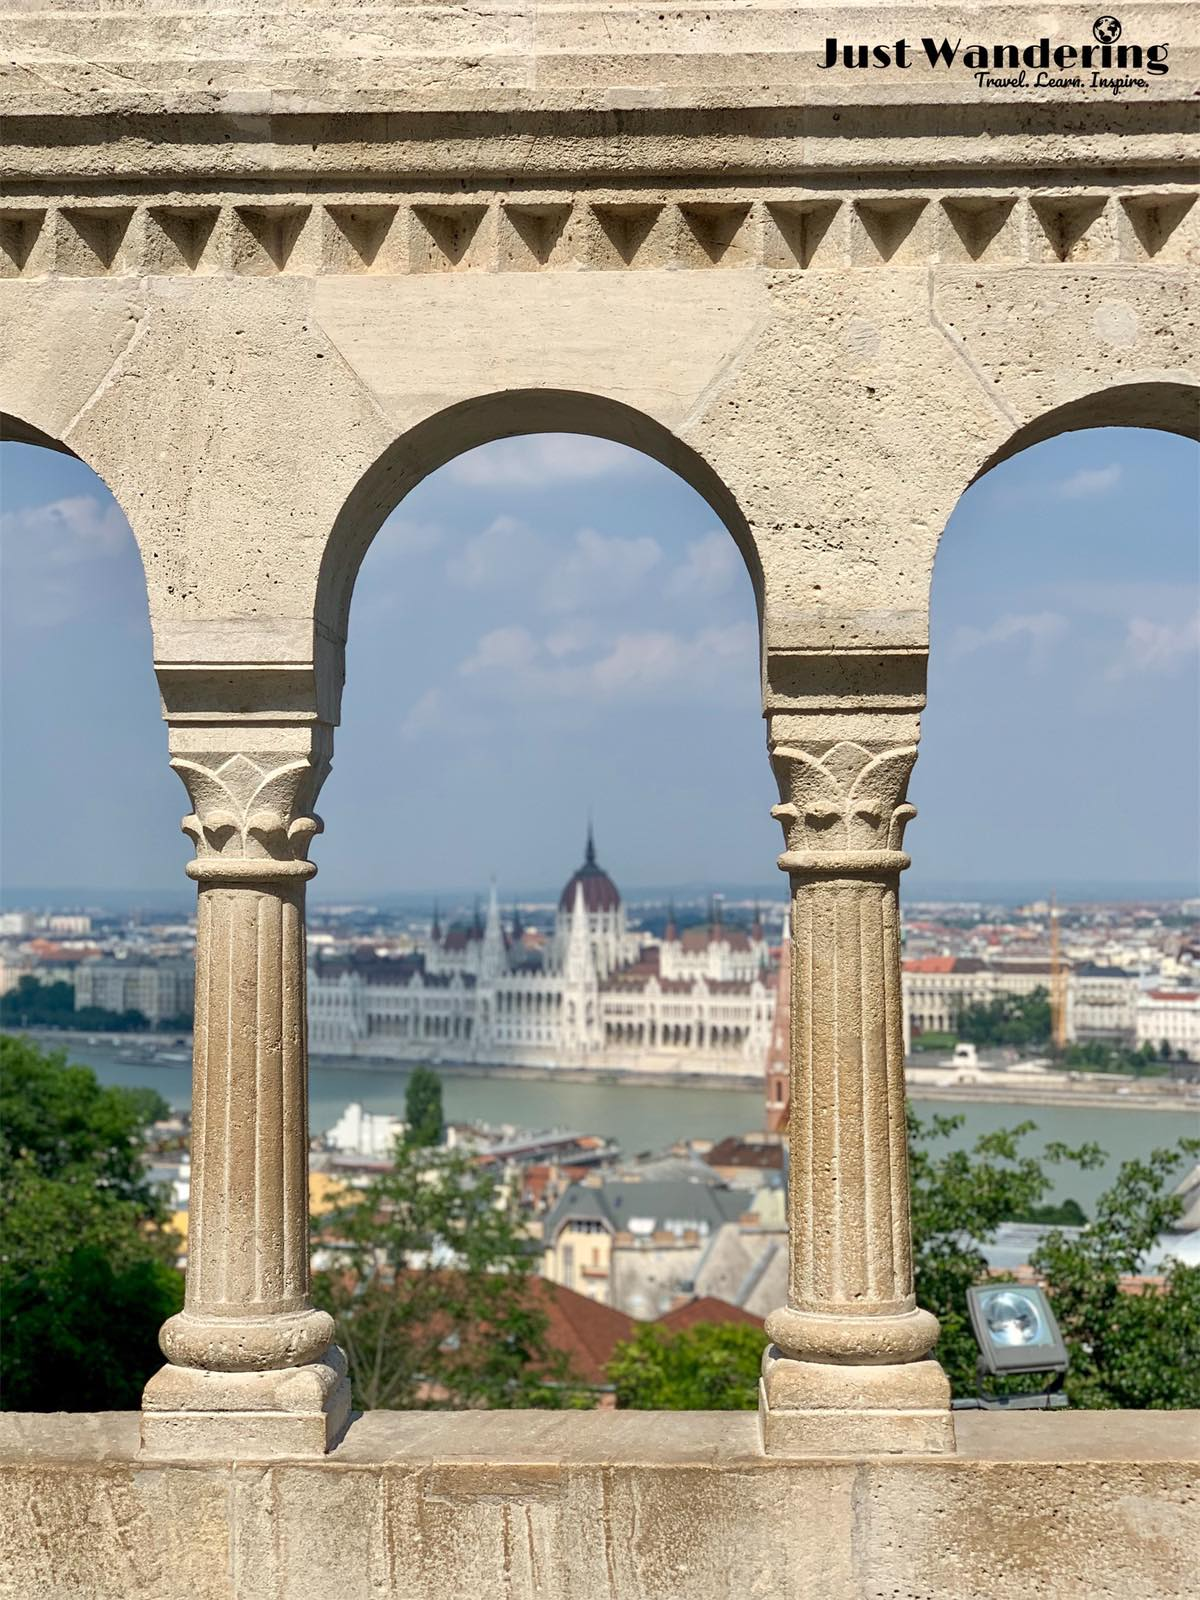 - The origins of the name Fisherman's Bastion is a subject of debate. Some believe the name comes from the fact that this side of the city (Buda) was protected by a guild of fishermen in the Middle Ages.